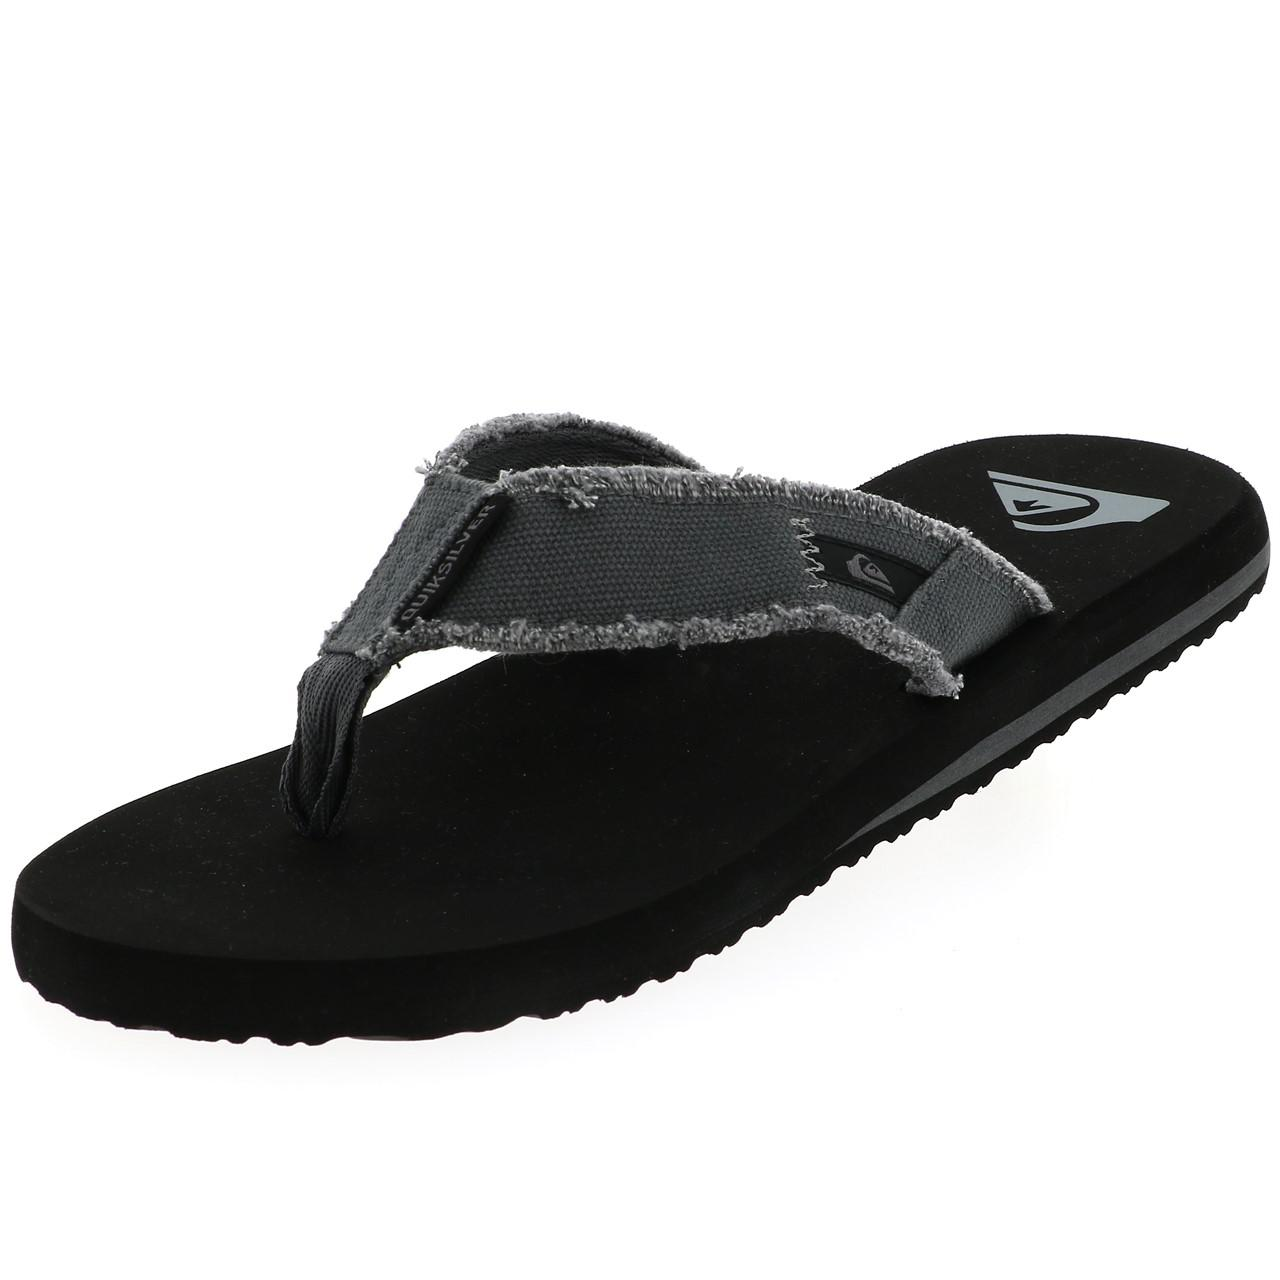 Flip-Flops-Tap-Dance-Shoes-Quiksilver-Monkey-Abyss-Groups-Blk-Flop-Grey-17978